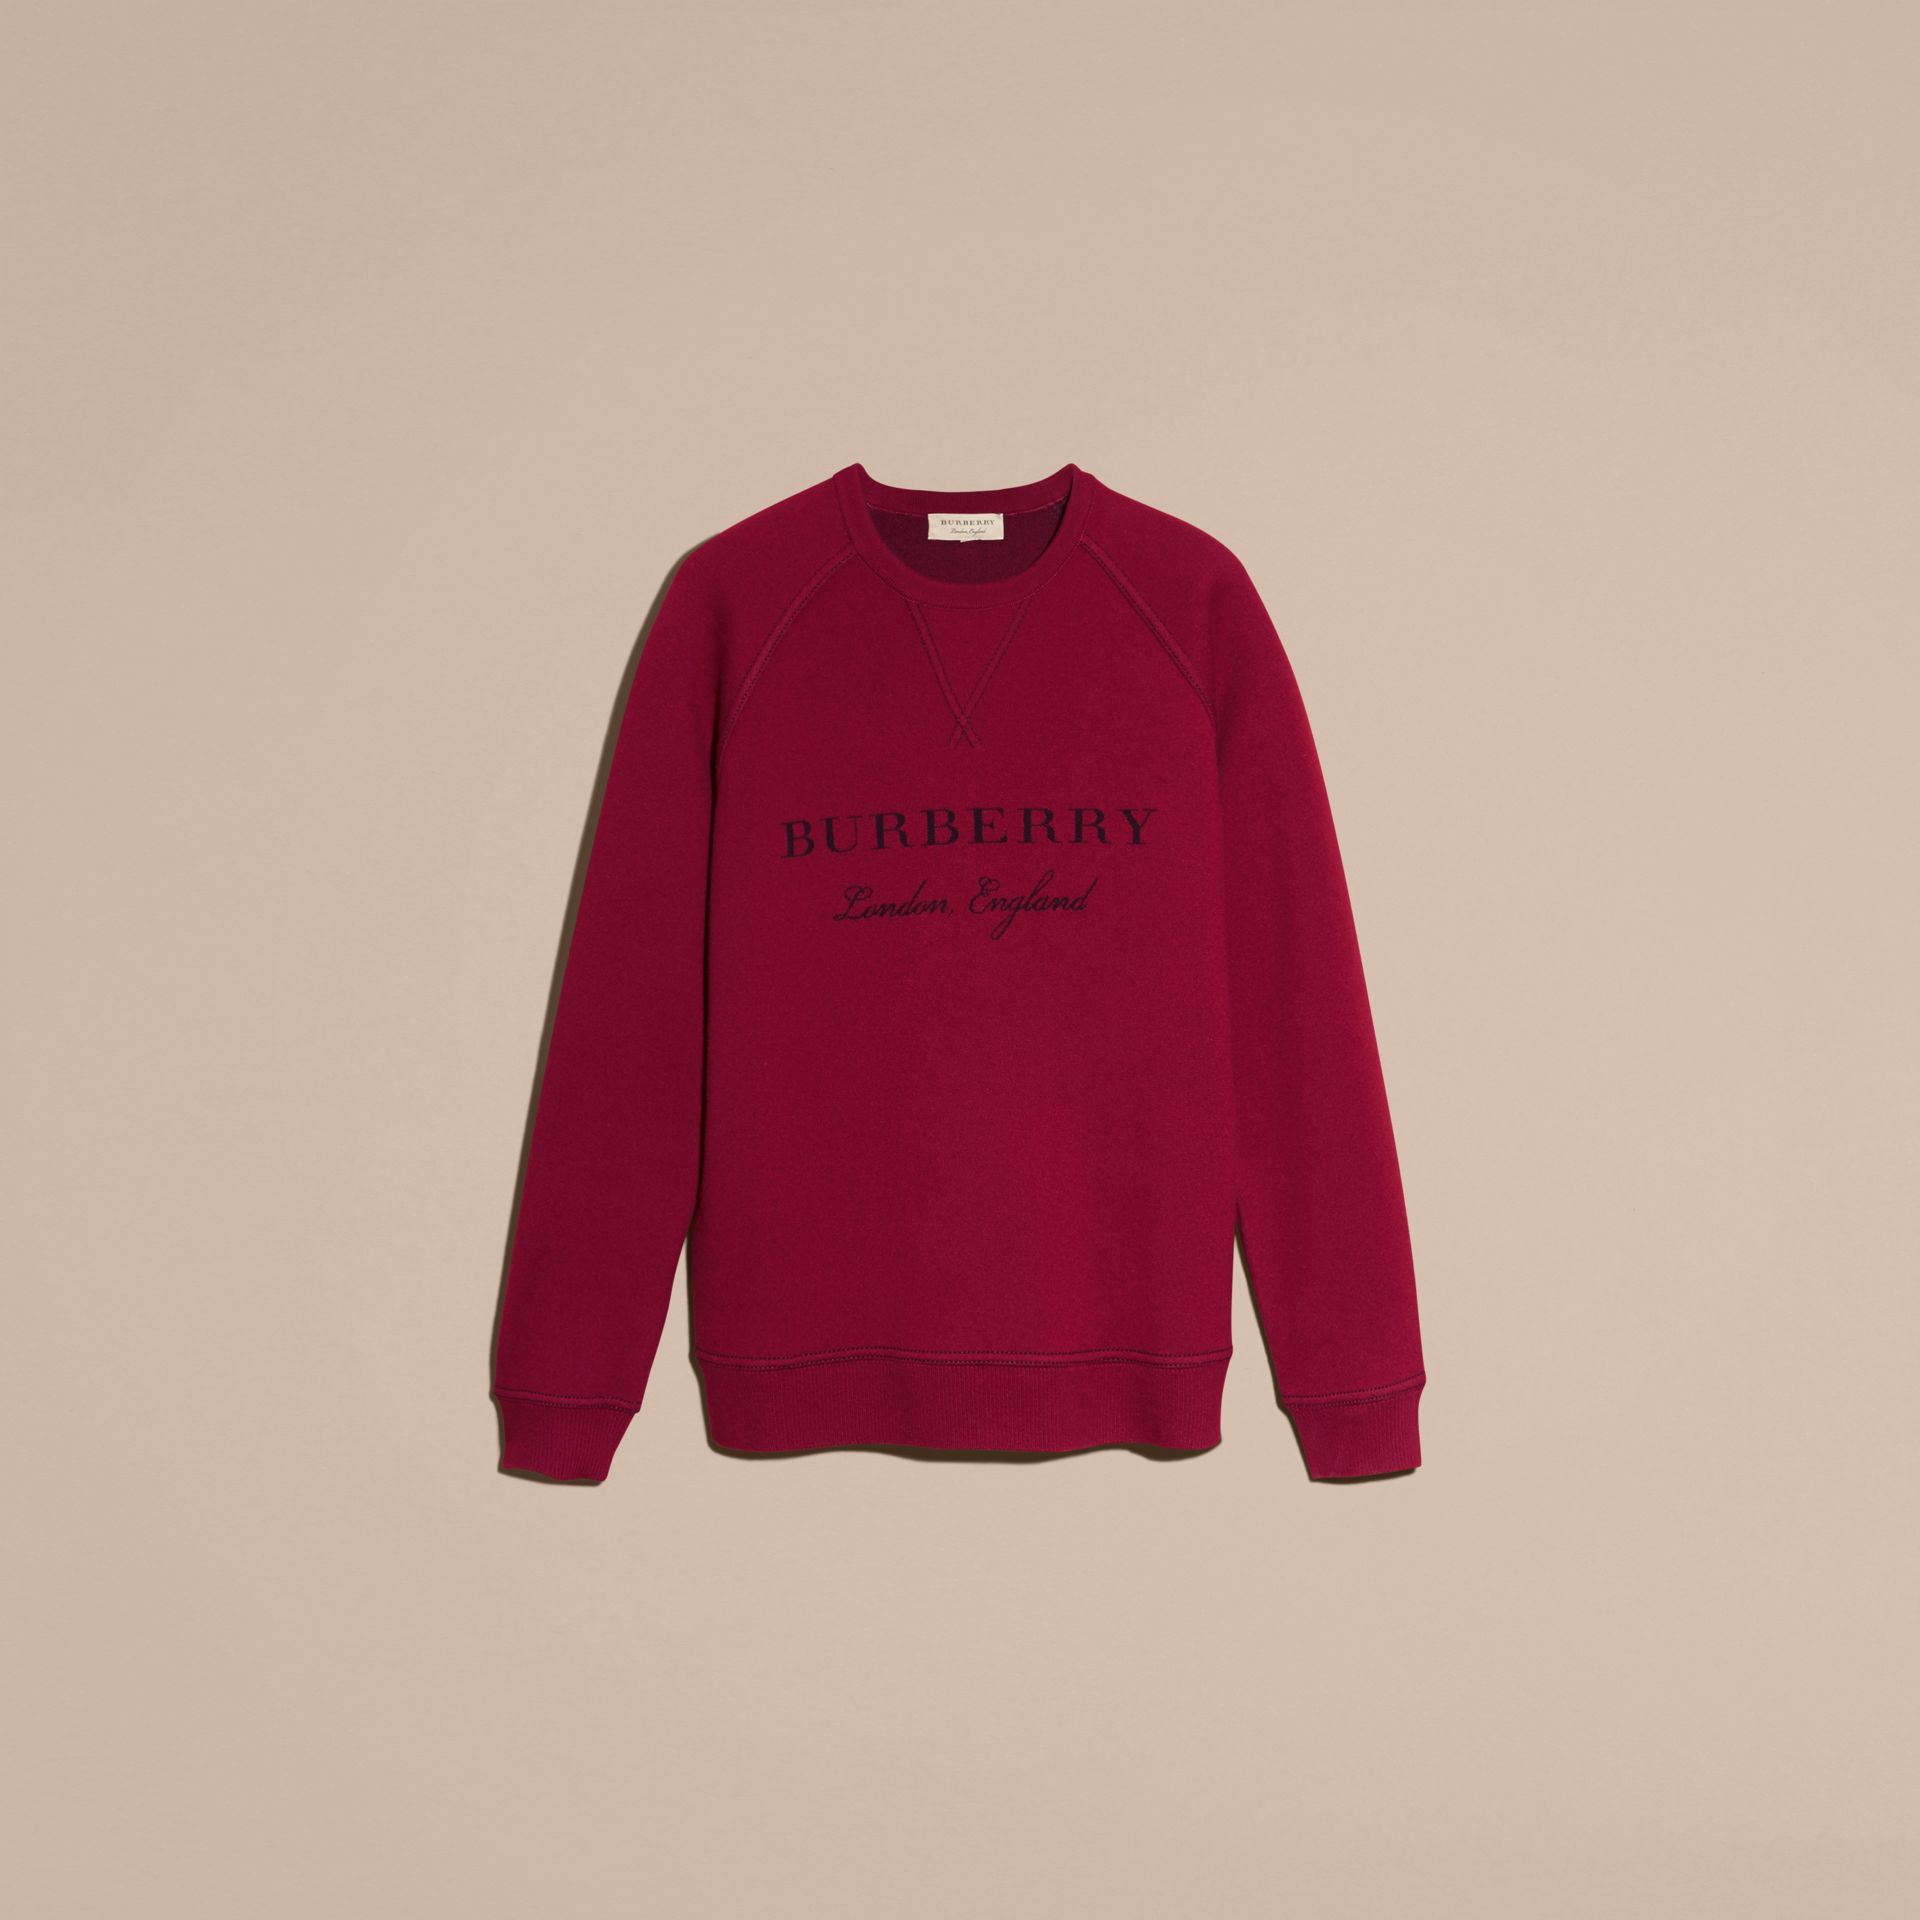 Topstitch Detail Wool Cashmere Blend Sweatshirt in Burgundy - Men | Burberry - gallery image 4